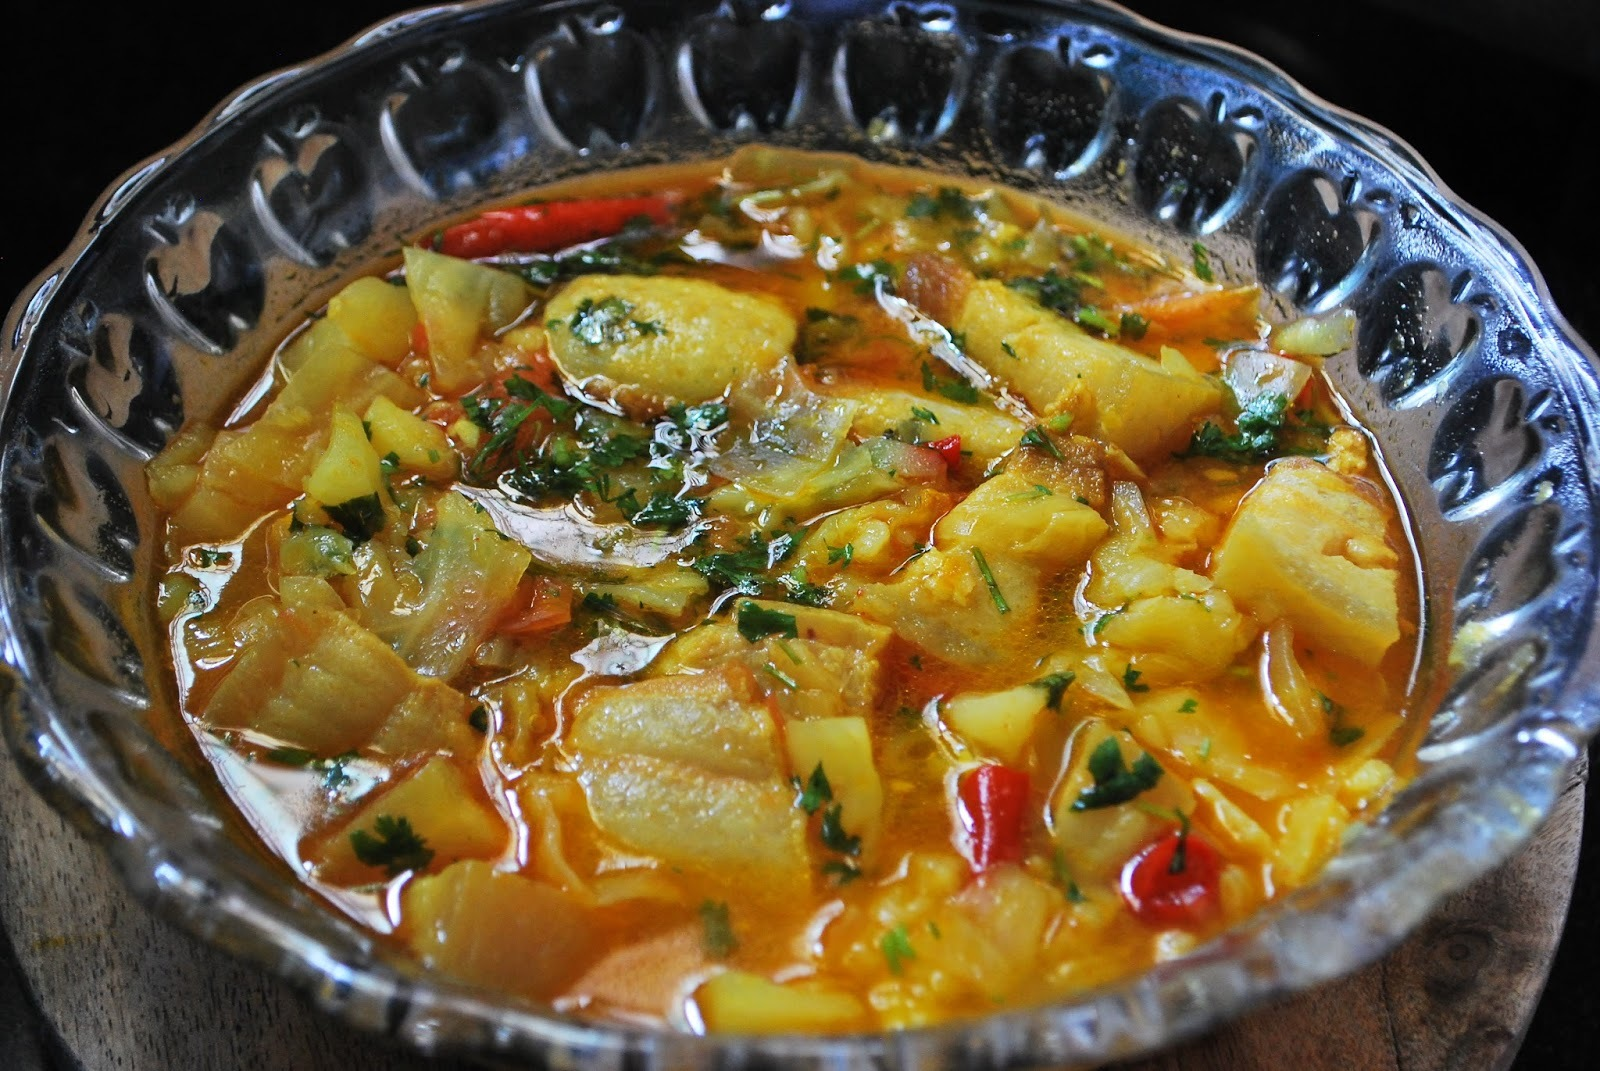 Cabbage Curry using rendered Pork Fat - Rongmei Naga Curryl!!